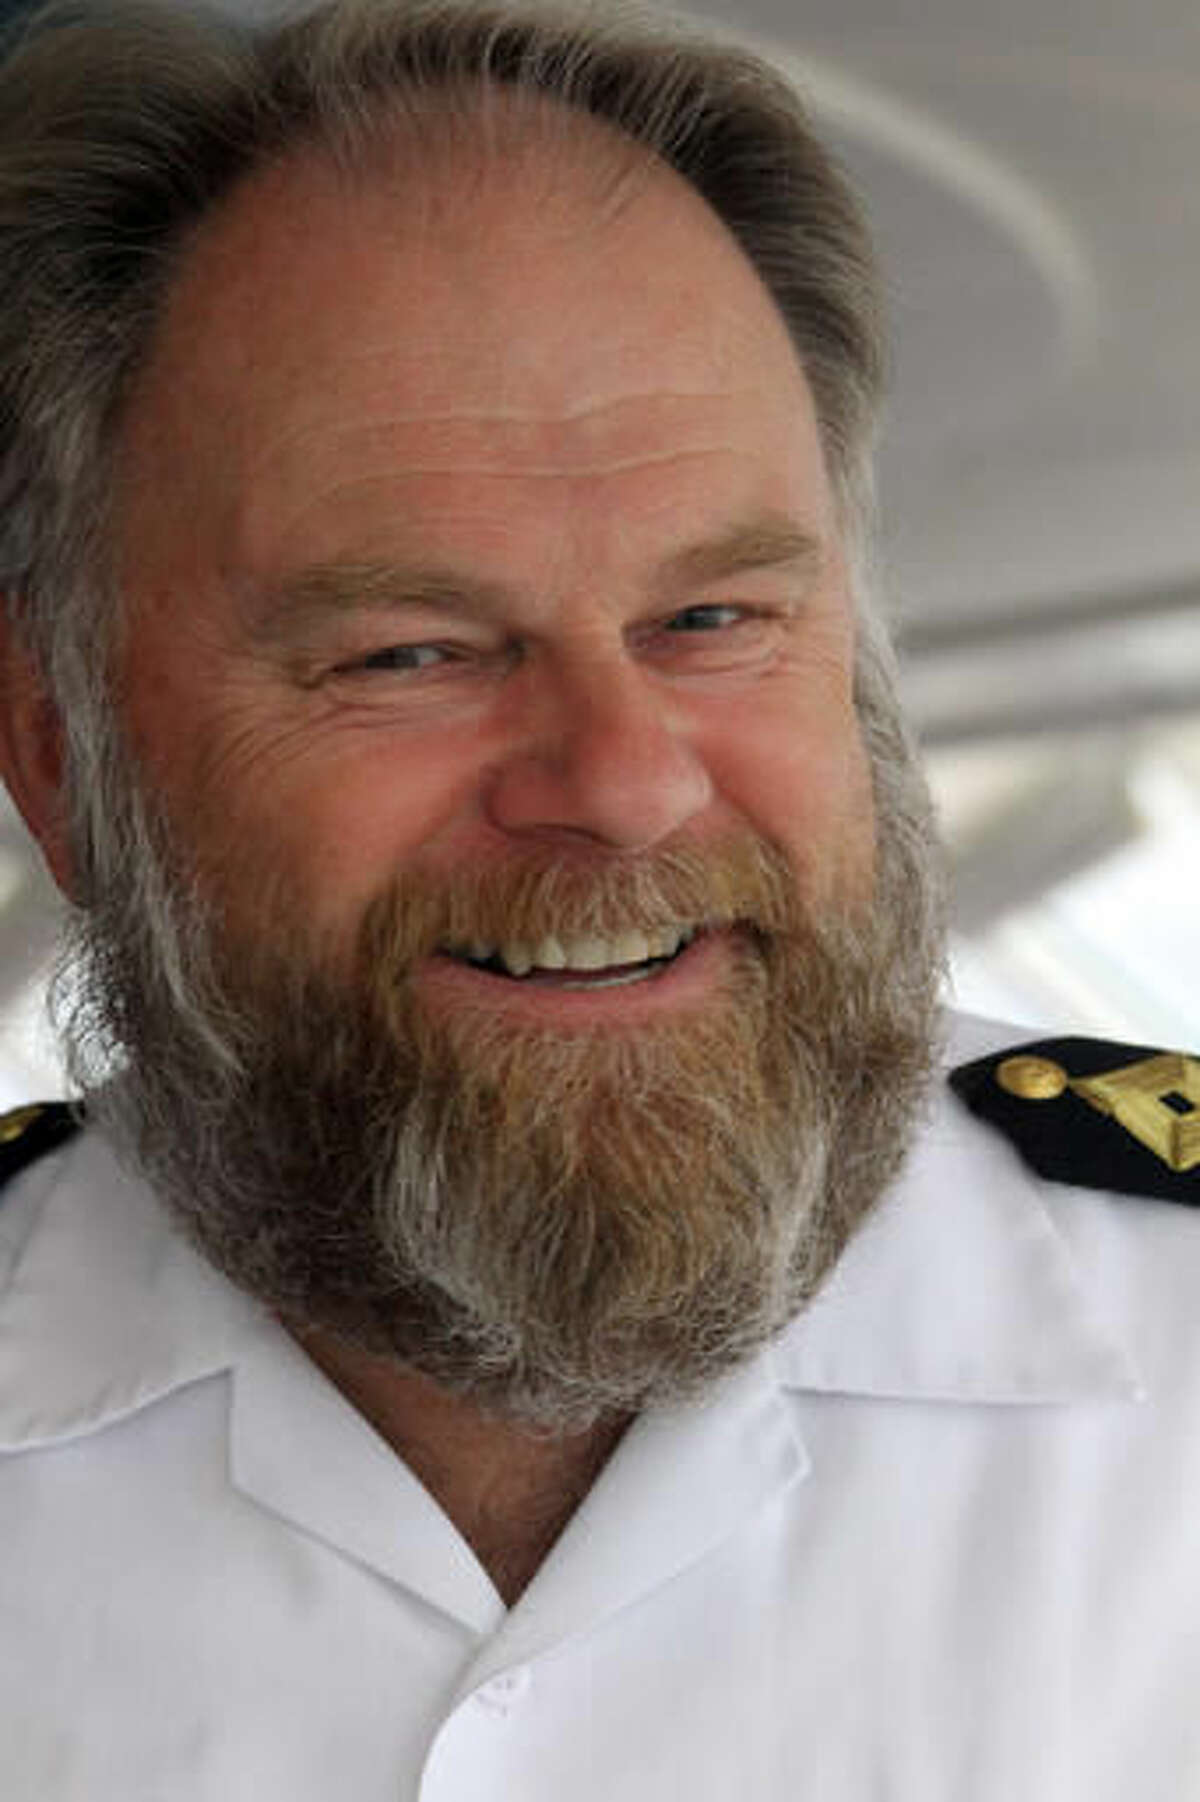 This Aug. 21, 2016, photo shows Birger Vorland, the captain of the cruise ship Crystal Serenity, speaking to reporters while the ship was anchored in the Bering Sea just off Nome, Alaska. The luxury liner was not only the largest ever to visit Nome but the biggest to go through the Northwest Passage. (AP Photo/Mark Thiessen)